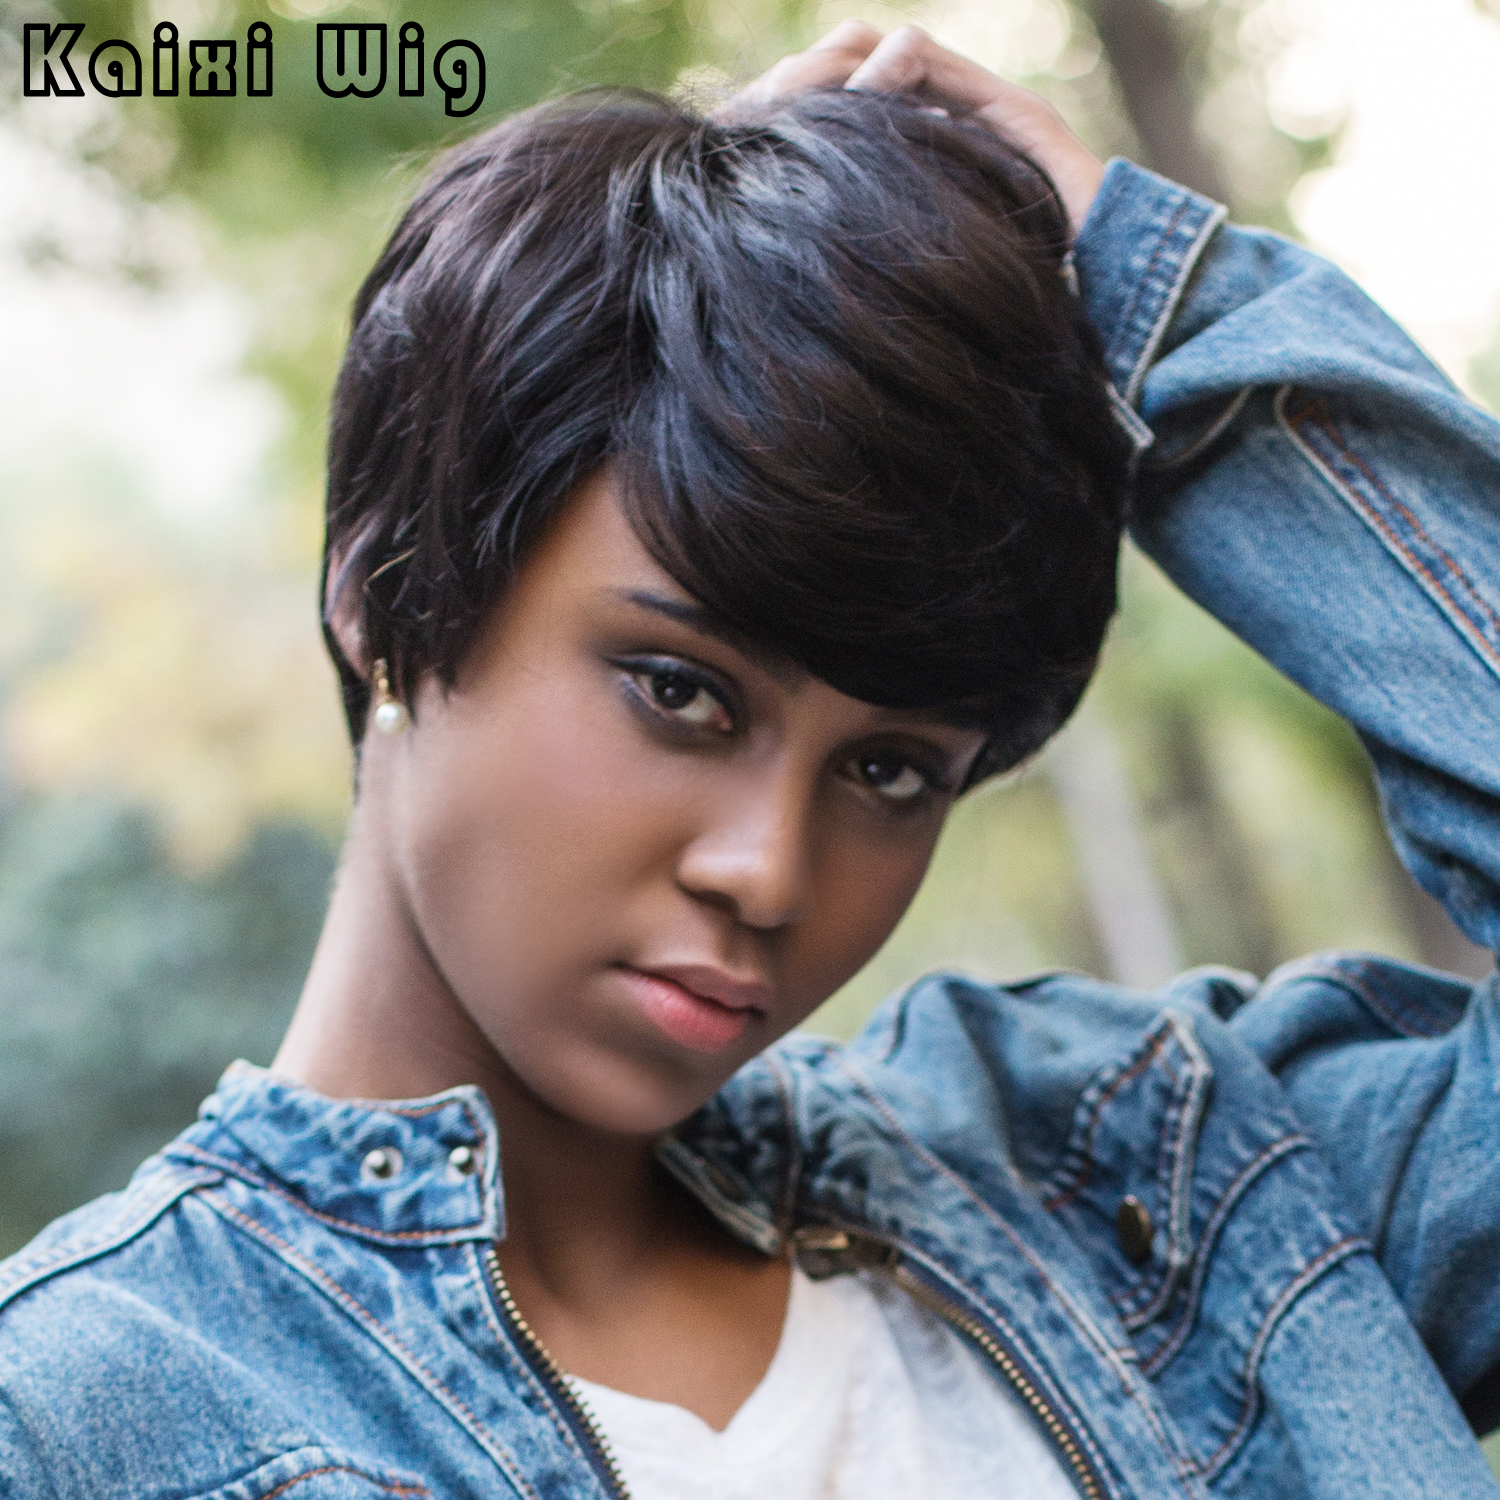 Synthetic Short Hair Wigs Short Black Wig Short Straight Pixie Cut Wig Synthetic Wigs for Black Women Heat Resistant<br><br>Aliexpress